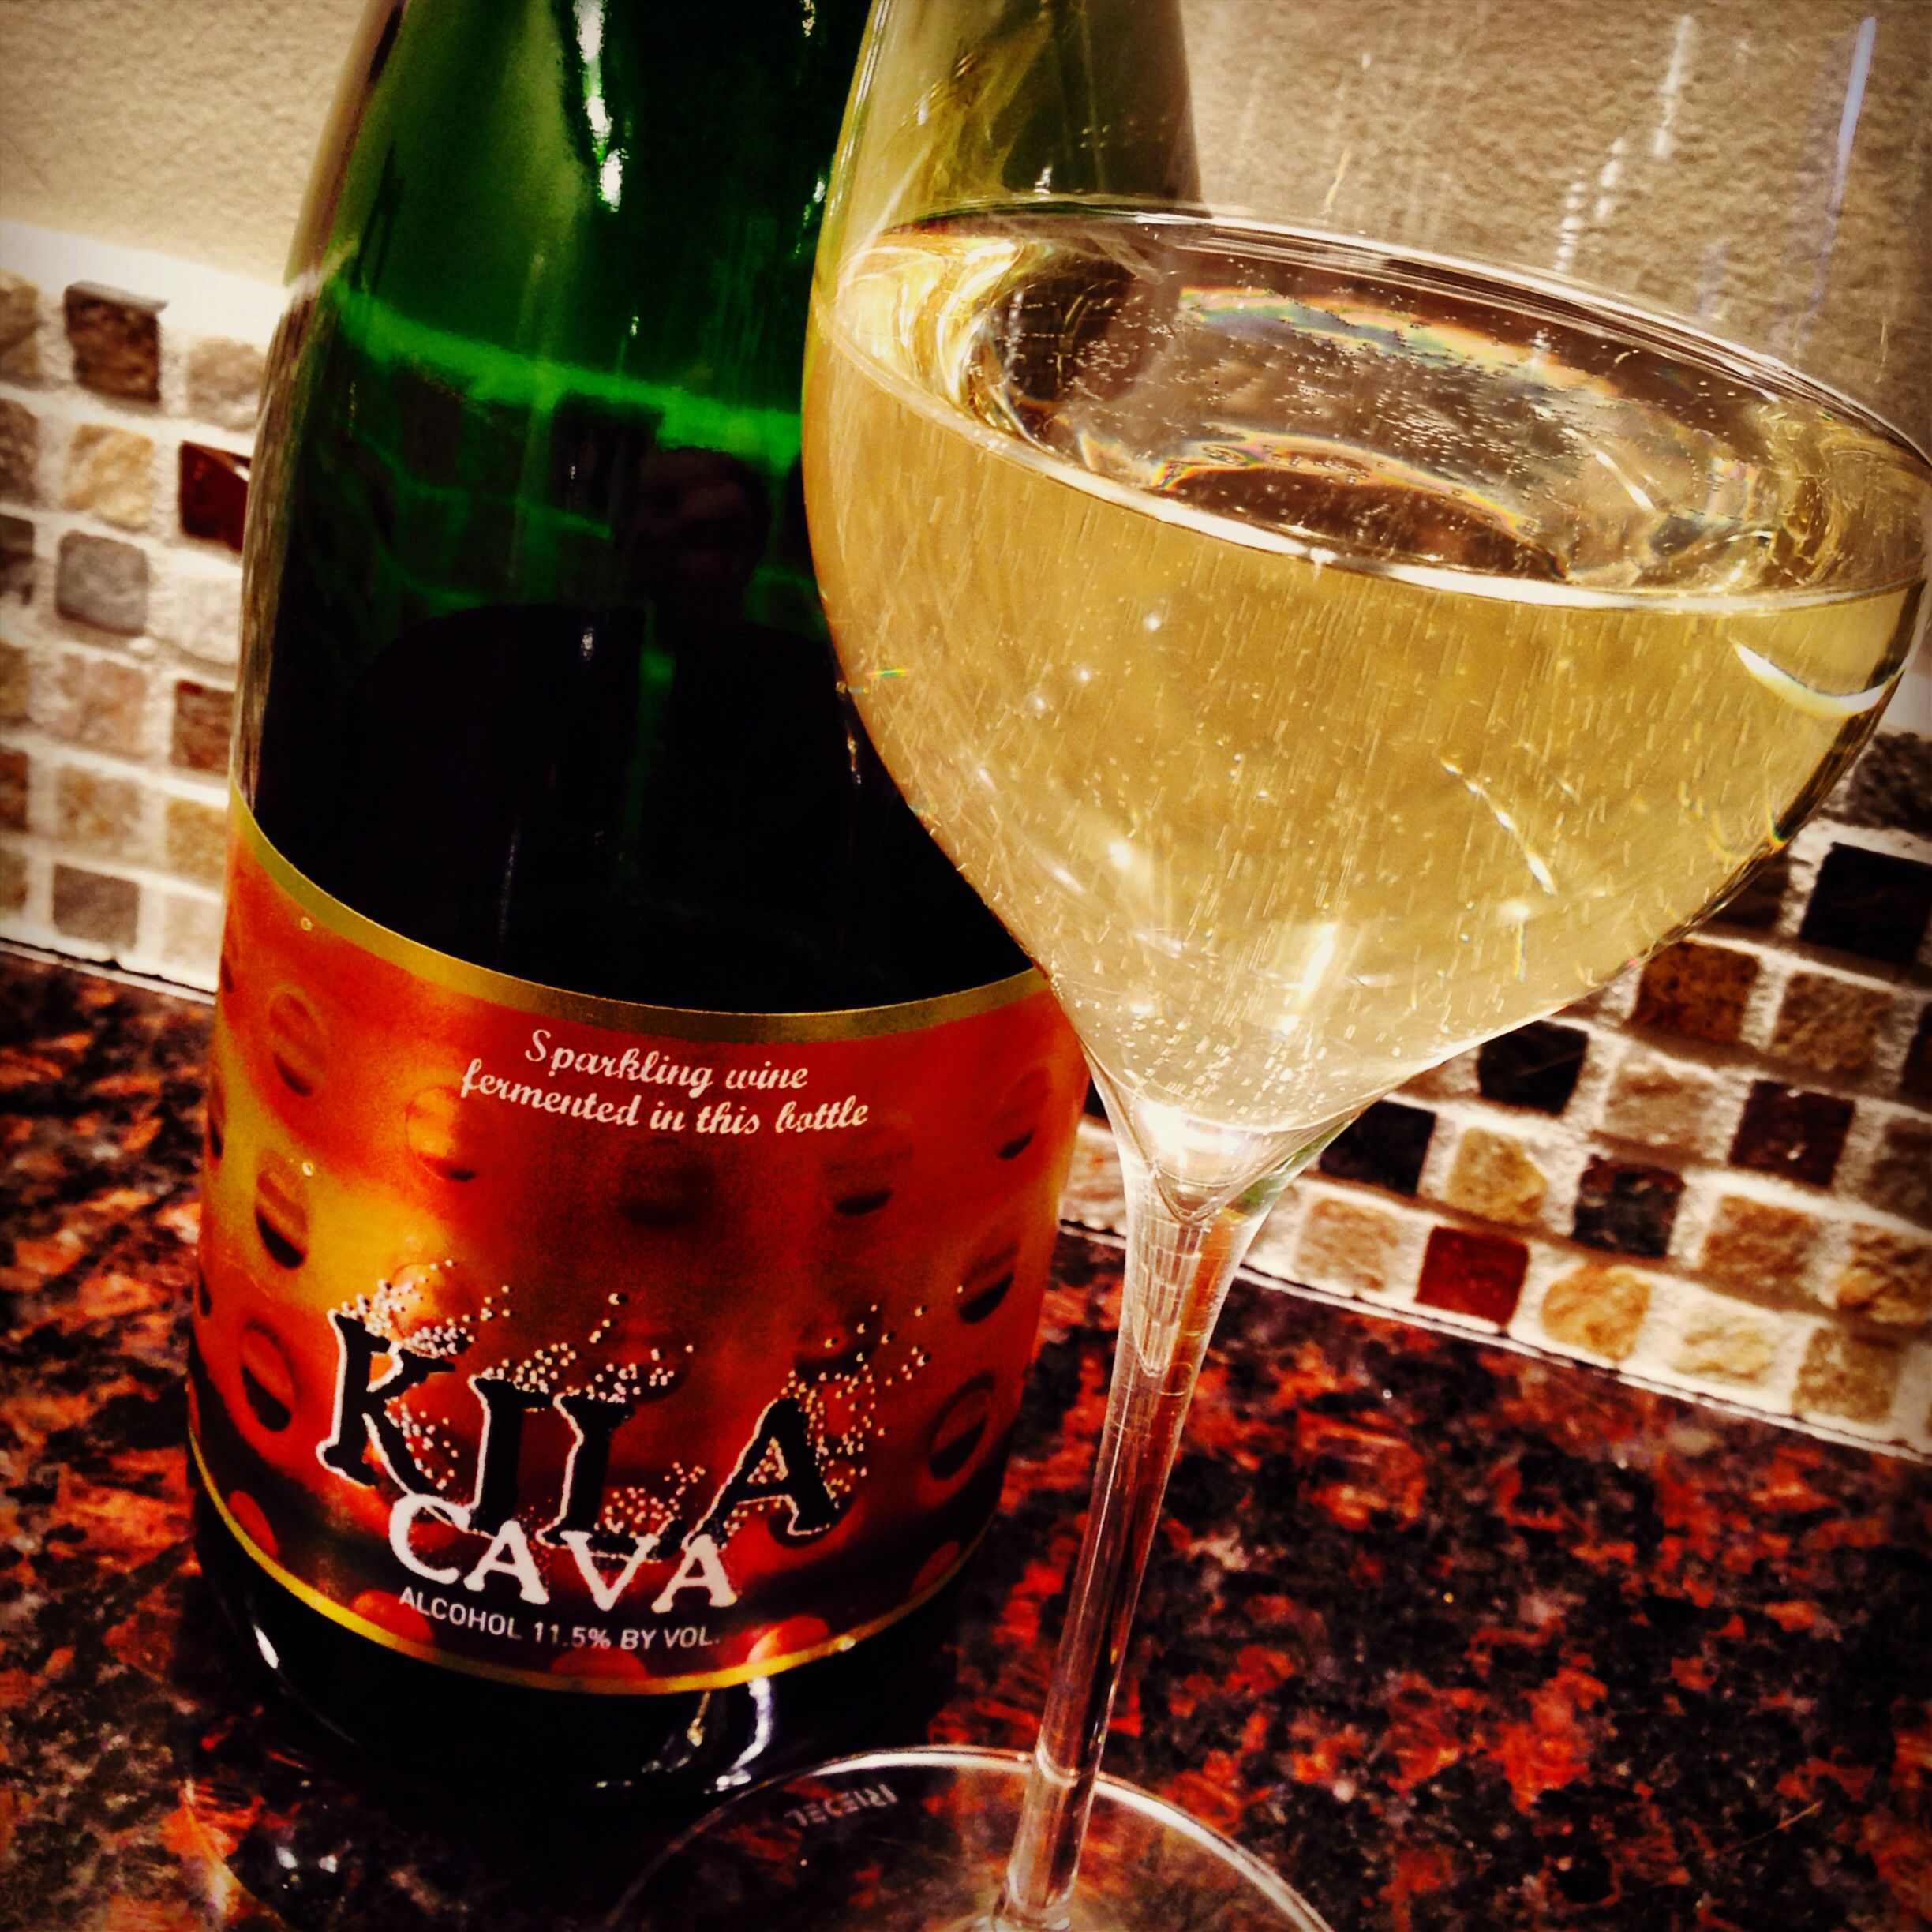 Kila Cava Bright Fresh Very Crisp With A Hint Of Green Apple What More Do You Need From A 10 Bt Of Cava Great For S Wine Pairing Super